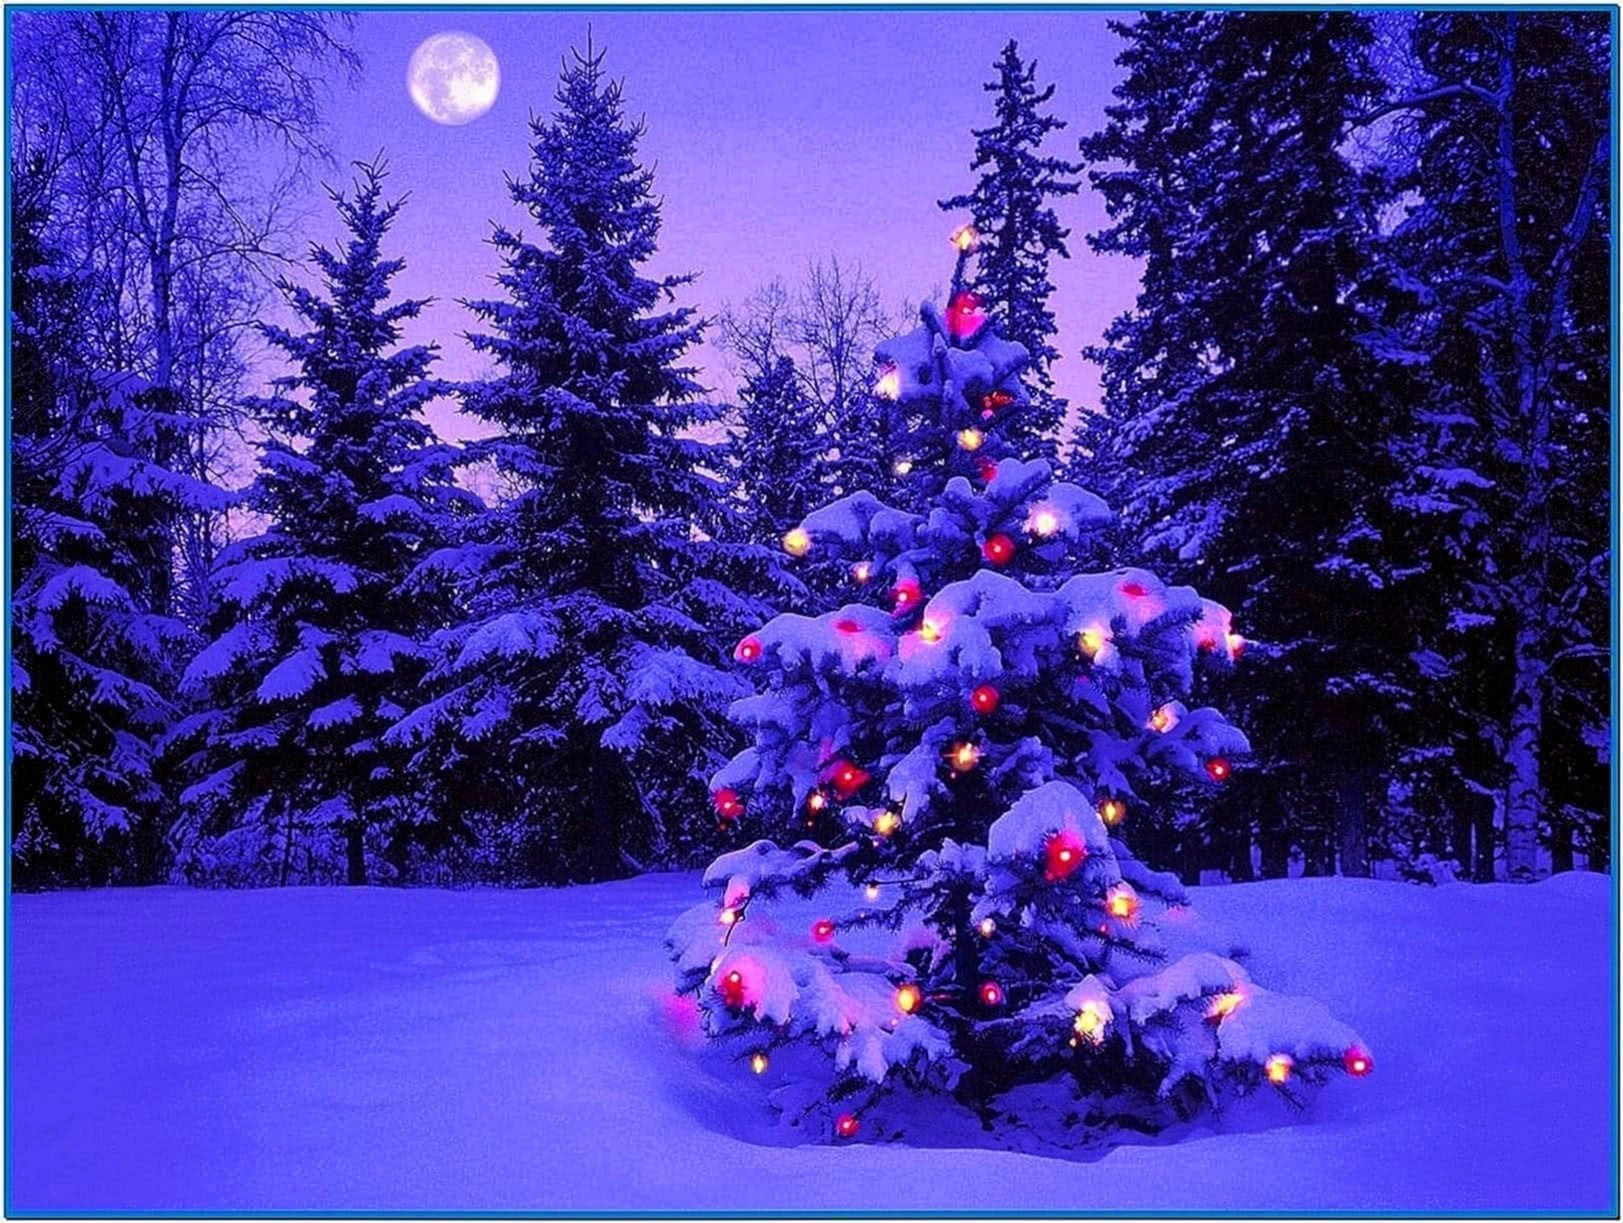 Screensaver Christmas Wallpaper